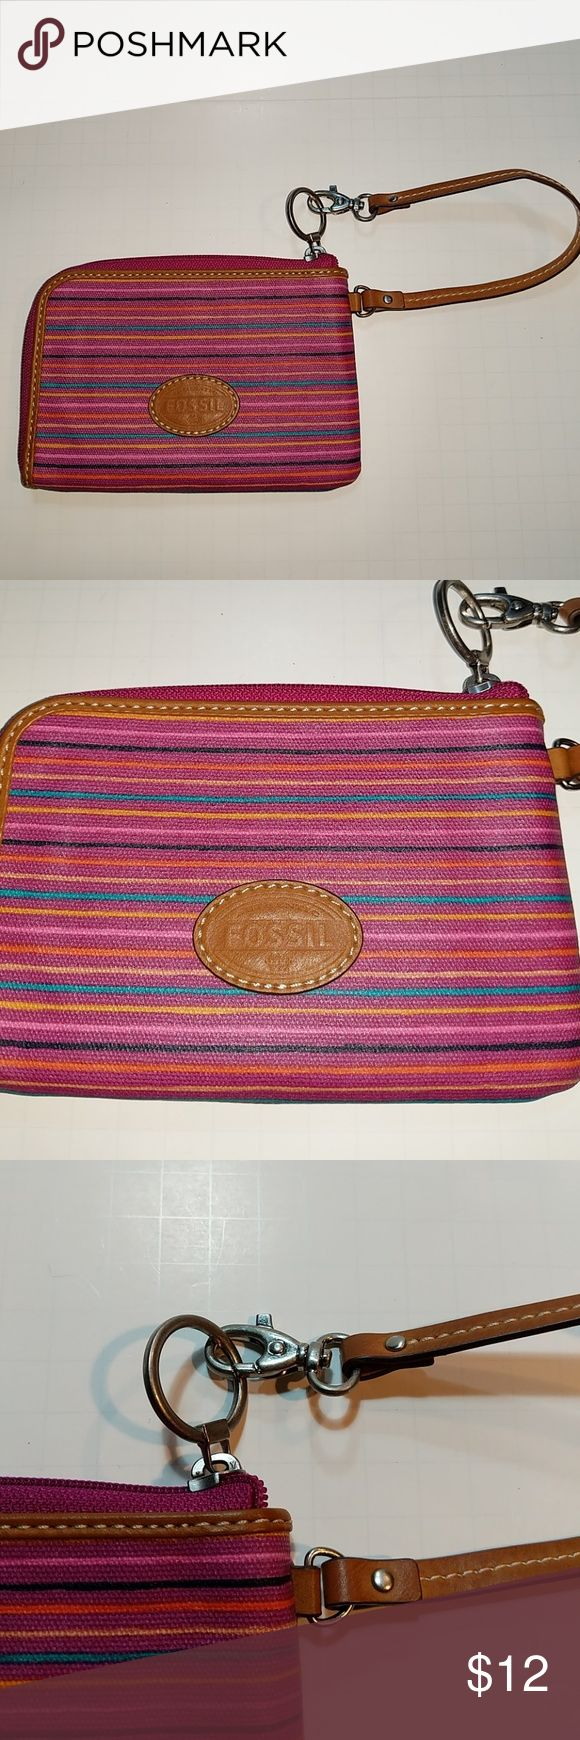 Fossil dark mauve wristlet Like new fossil wristlet purples with black orange yellow and a teal stripe inside is a pink with credit card holders. Fossil Bags Clutches & Wristlets